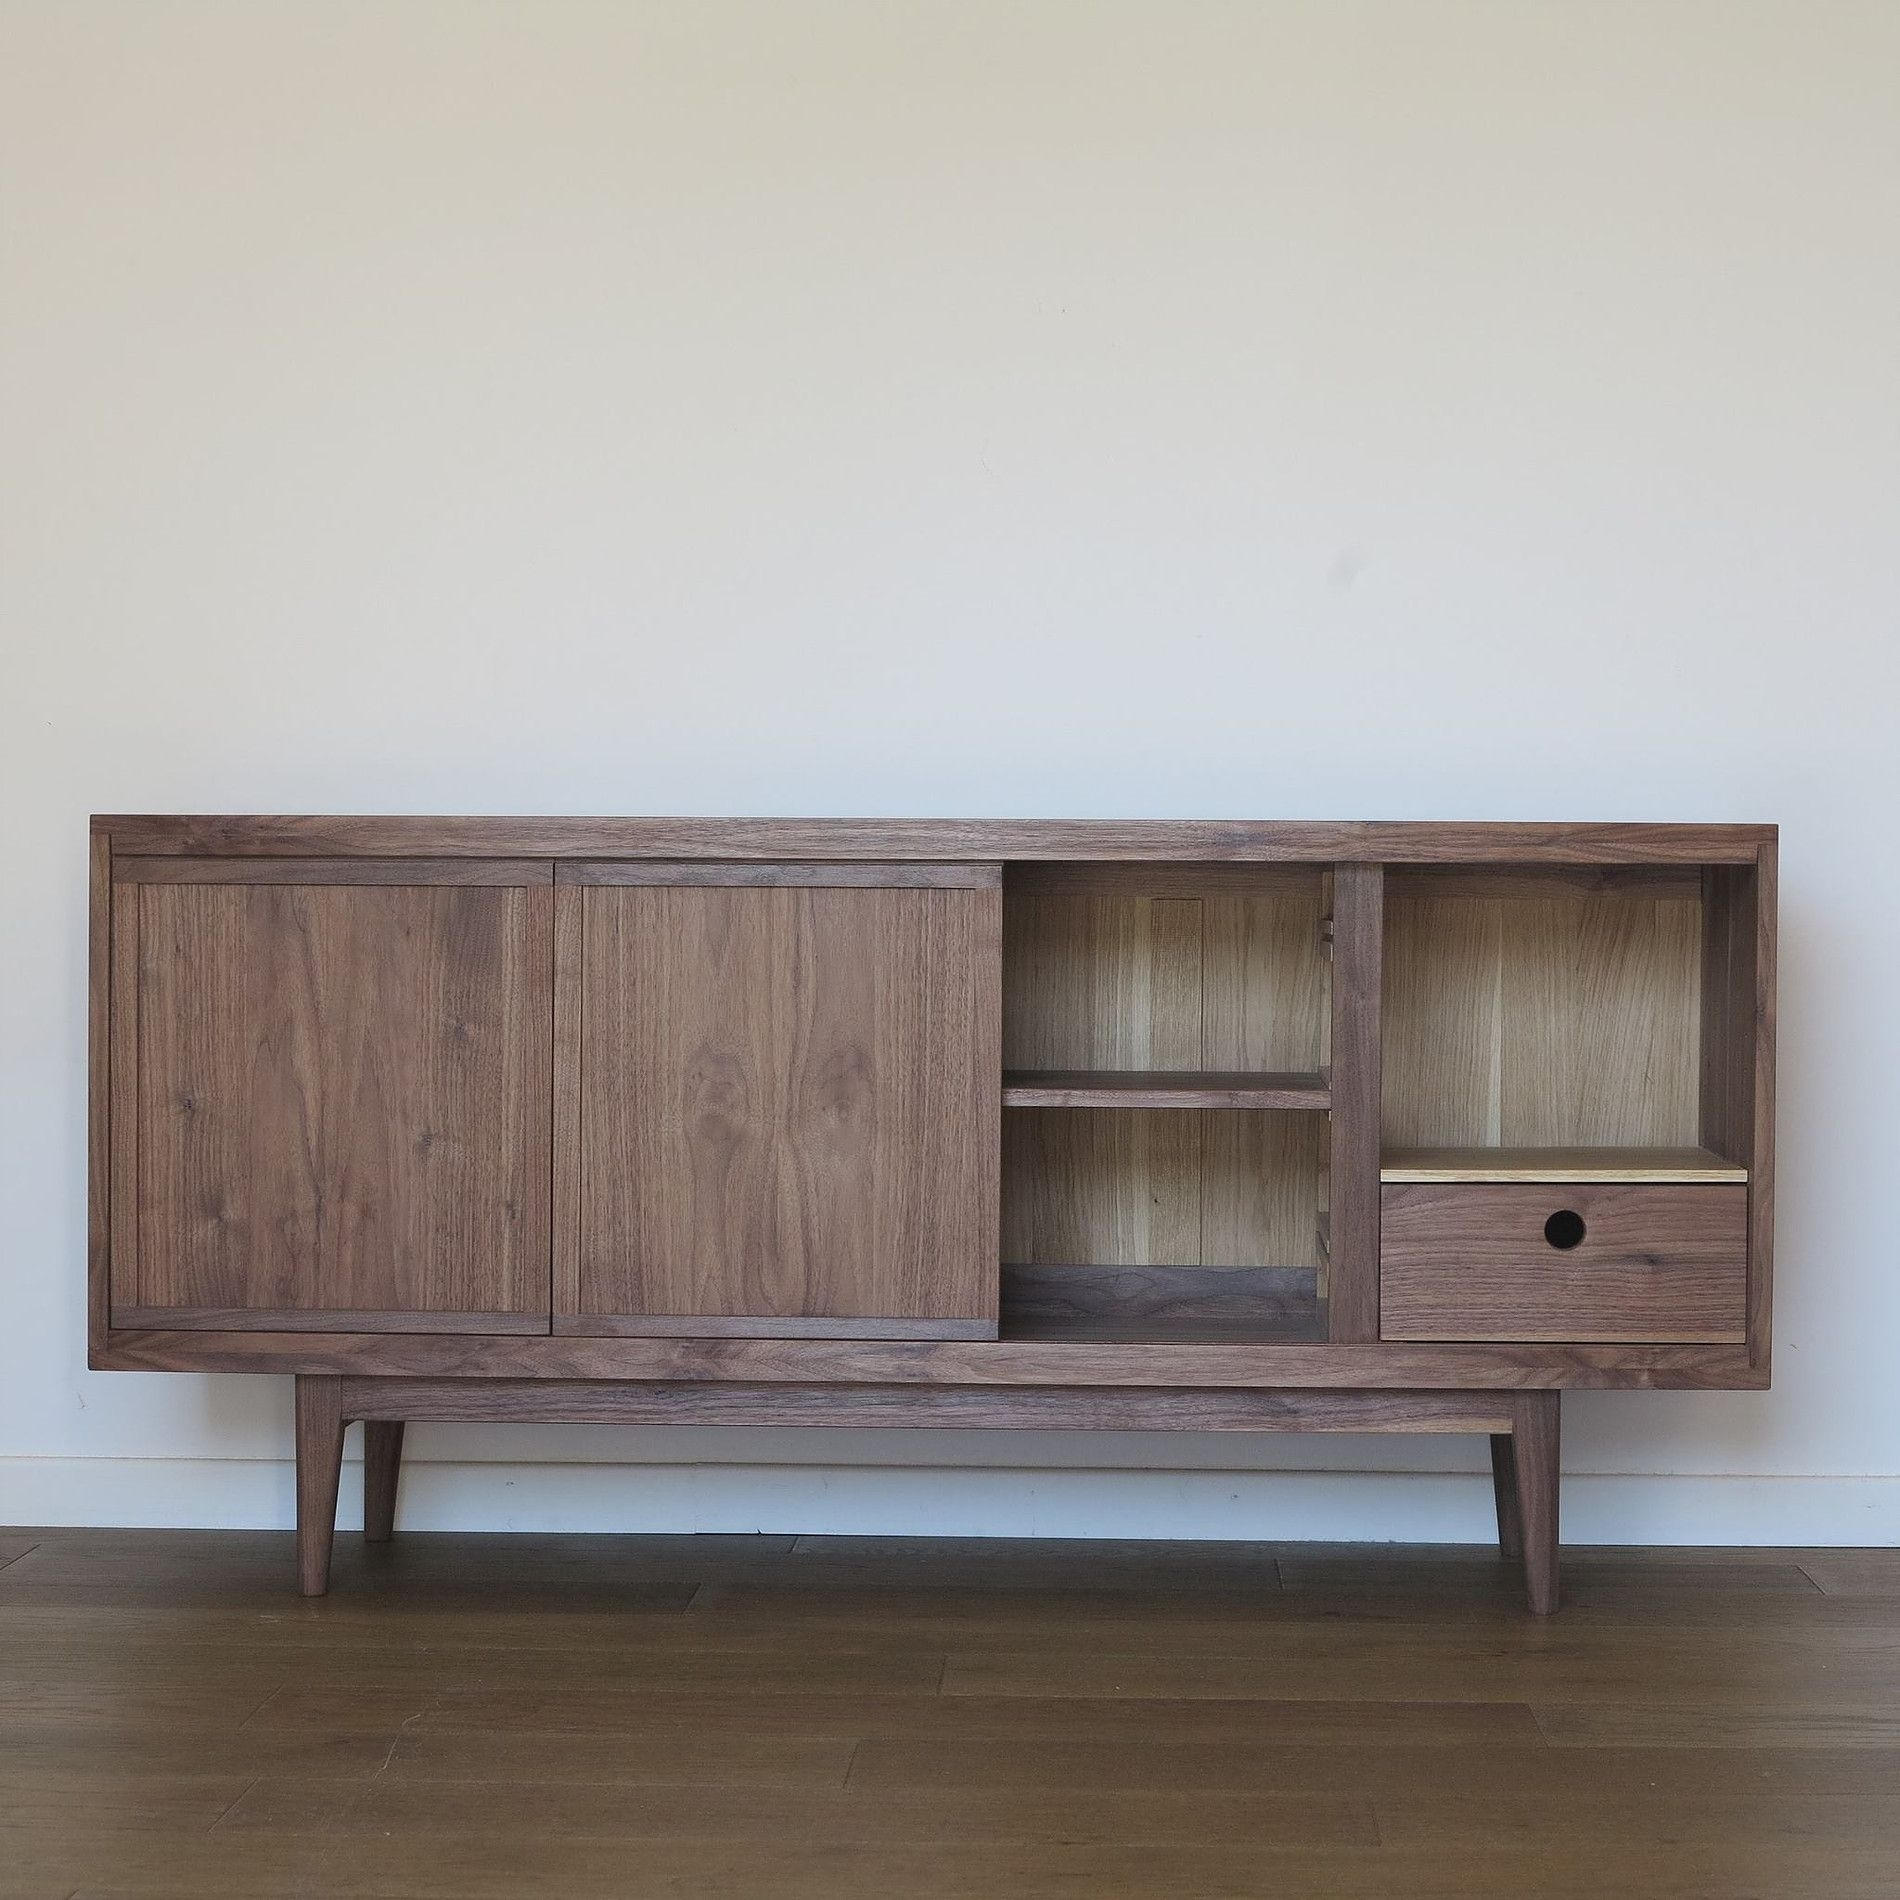 Enfilade Noyer Américain | Furniture | Pinterest | Dan Pertaining To Jigsaw Refinement Sideboards (Gallery 7 of 30)